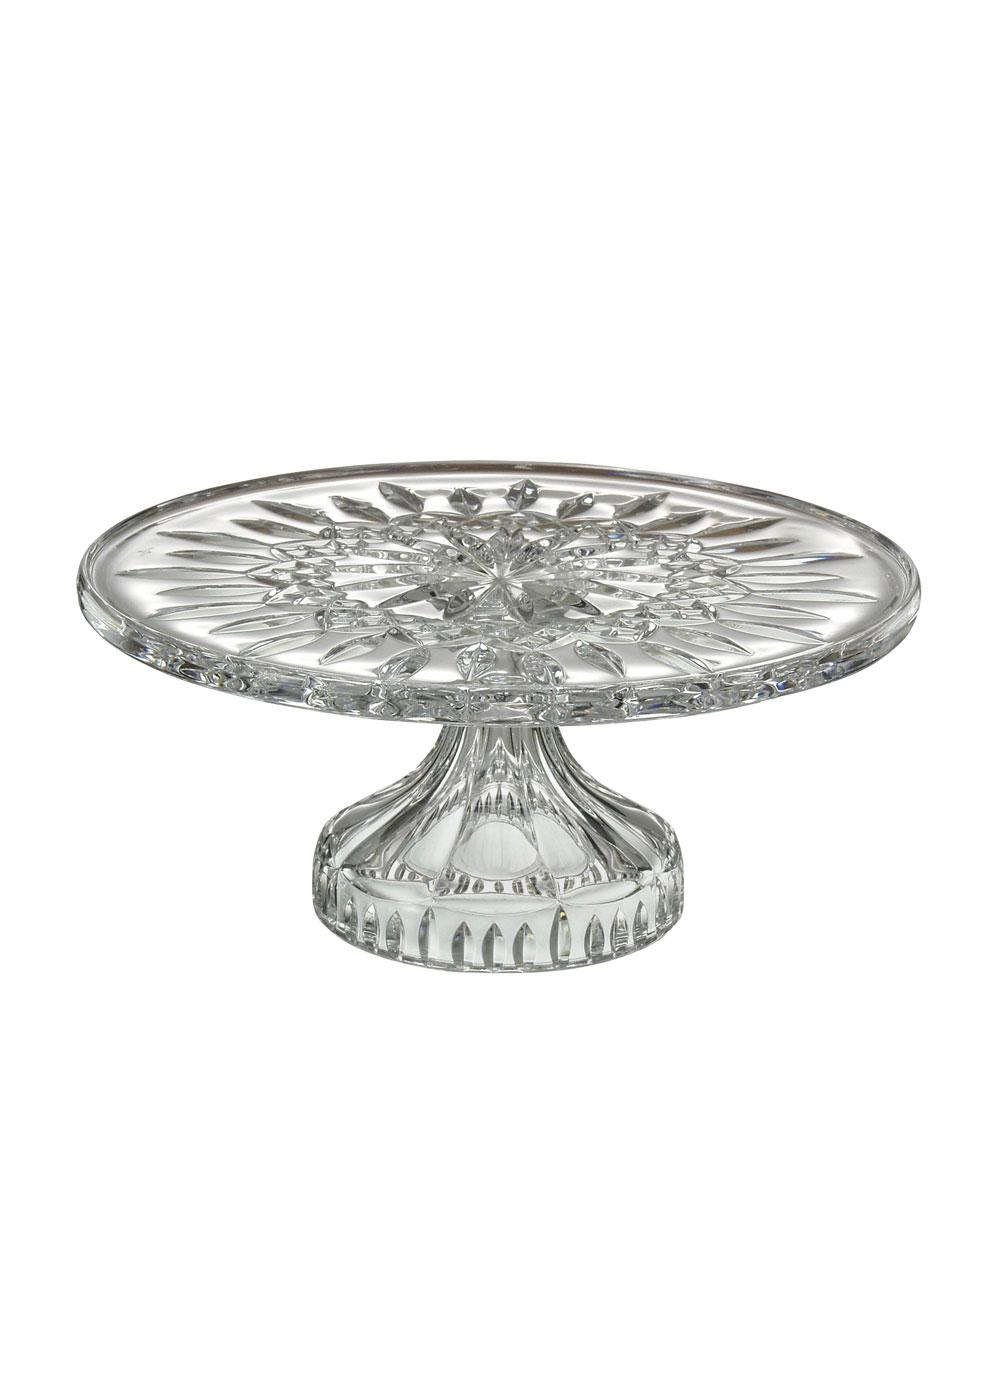 Waterford Crystal Lismore Footed Cake Plate  sc 1 st  Blarney Woollen Mills & Waterford Crystal | Lismore Cake Plate | Blarney